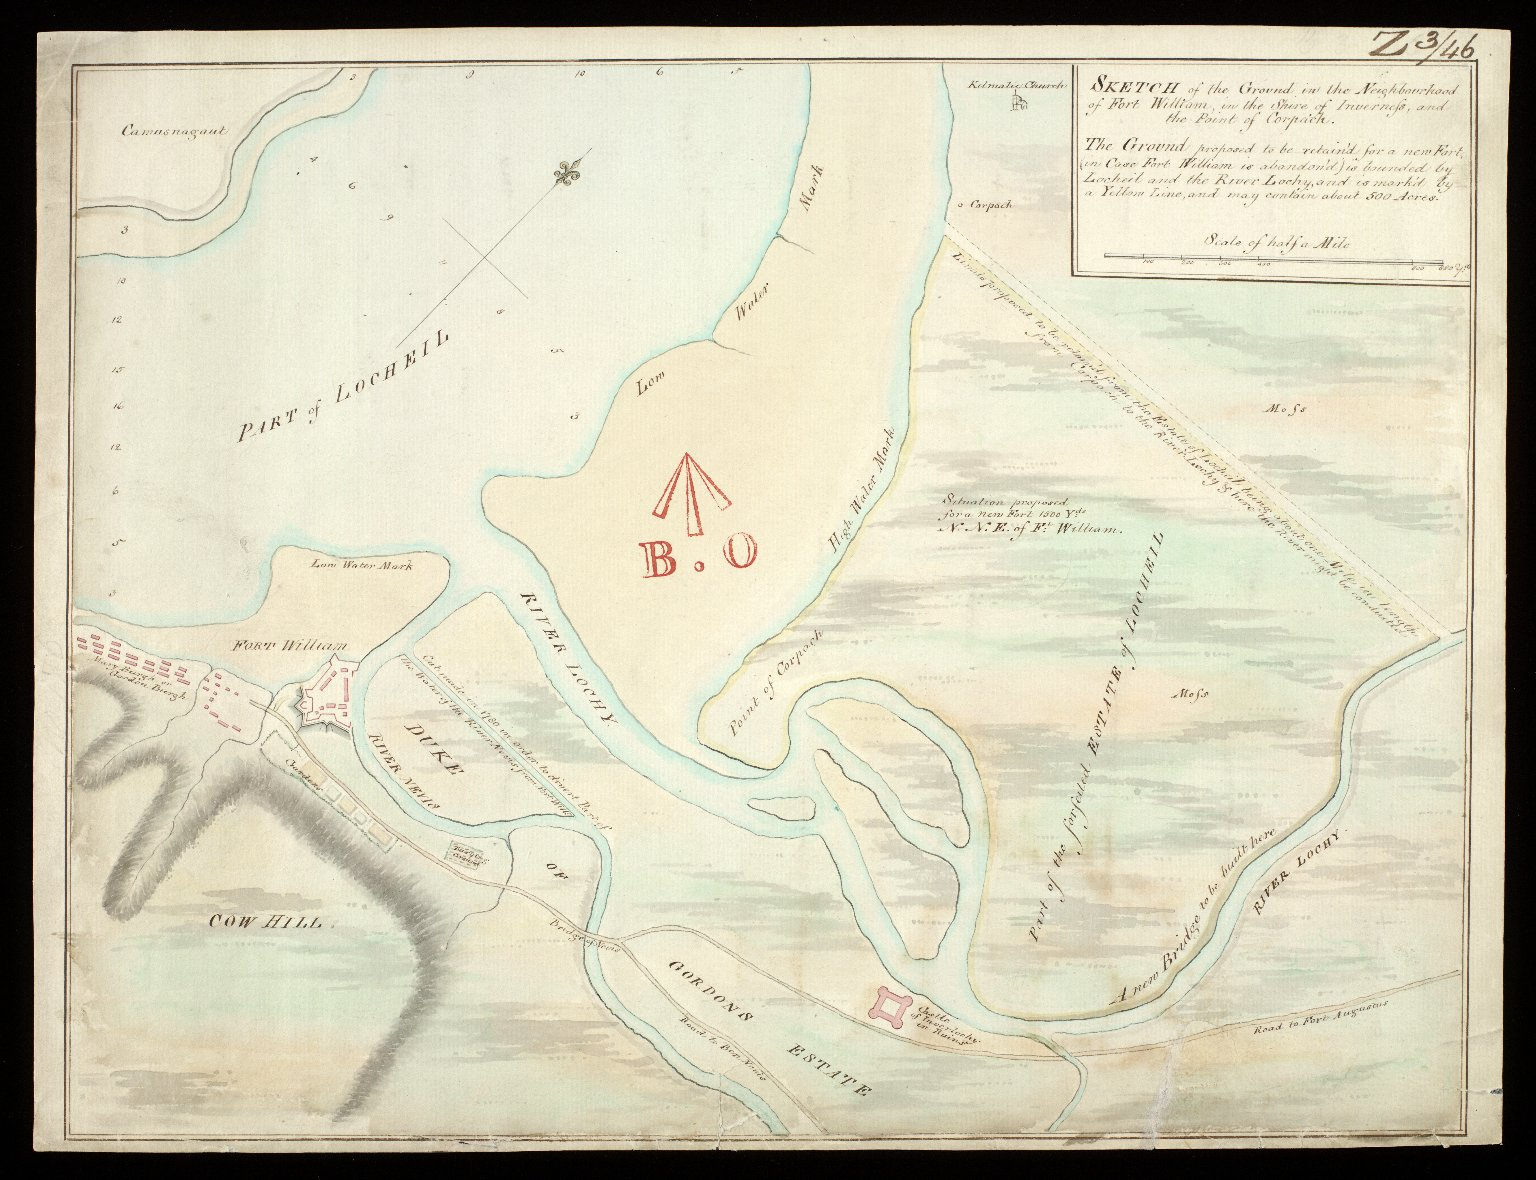 Sketch of the ground in the neighbourhood of Fort William, in the shire of Inverness, and the Point of Corpach. [1 of 1]